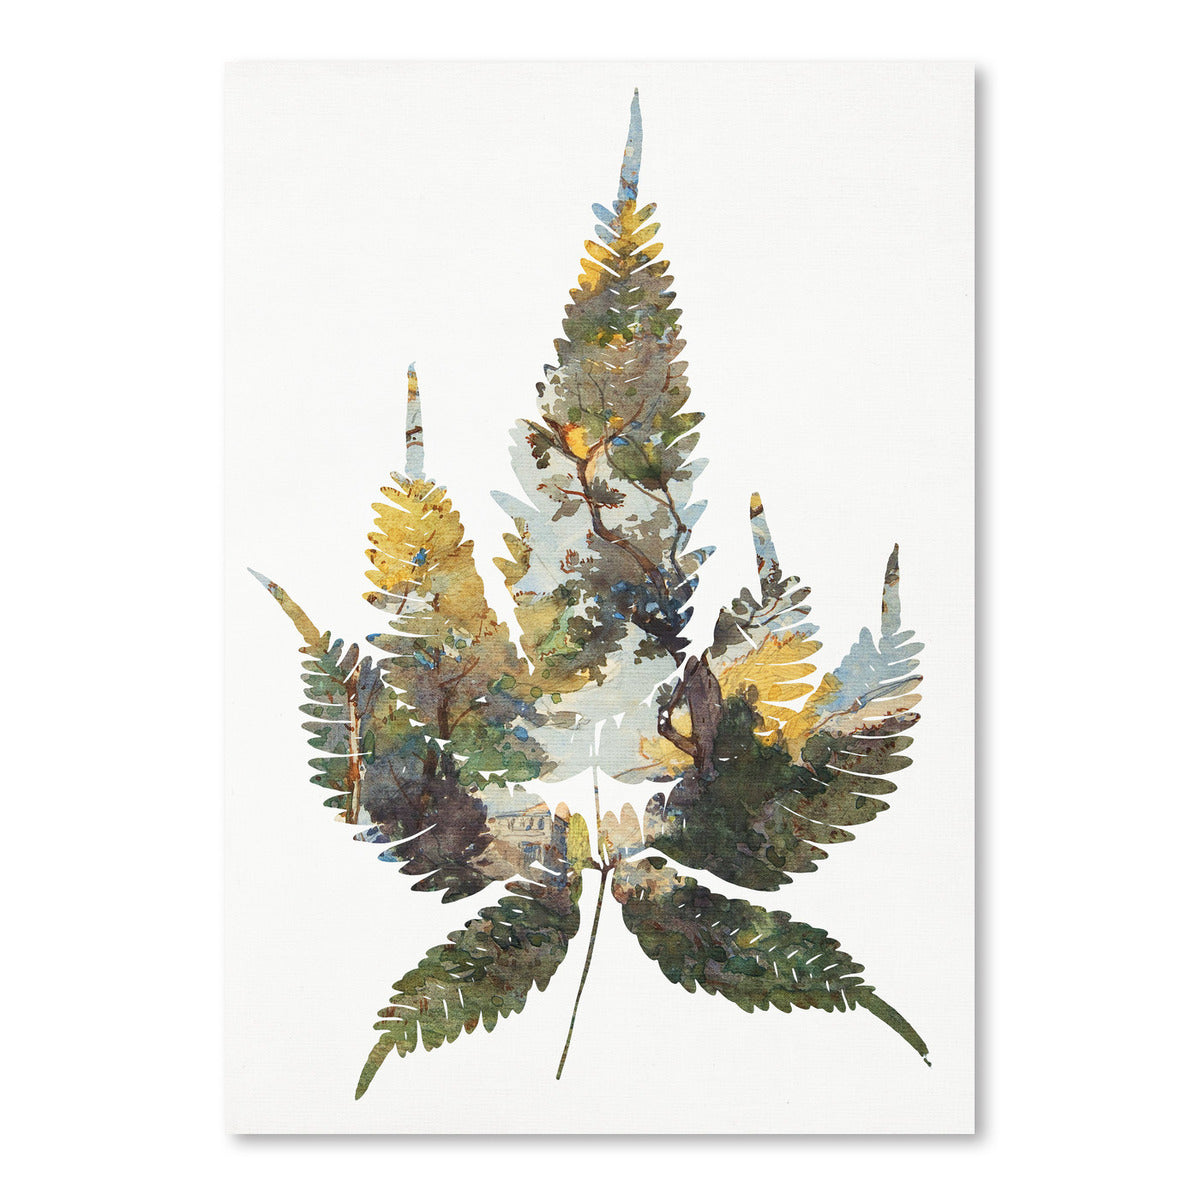 Leaf Collage I by Chaos & Wonder Design - Art Print - Americanflat